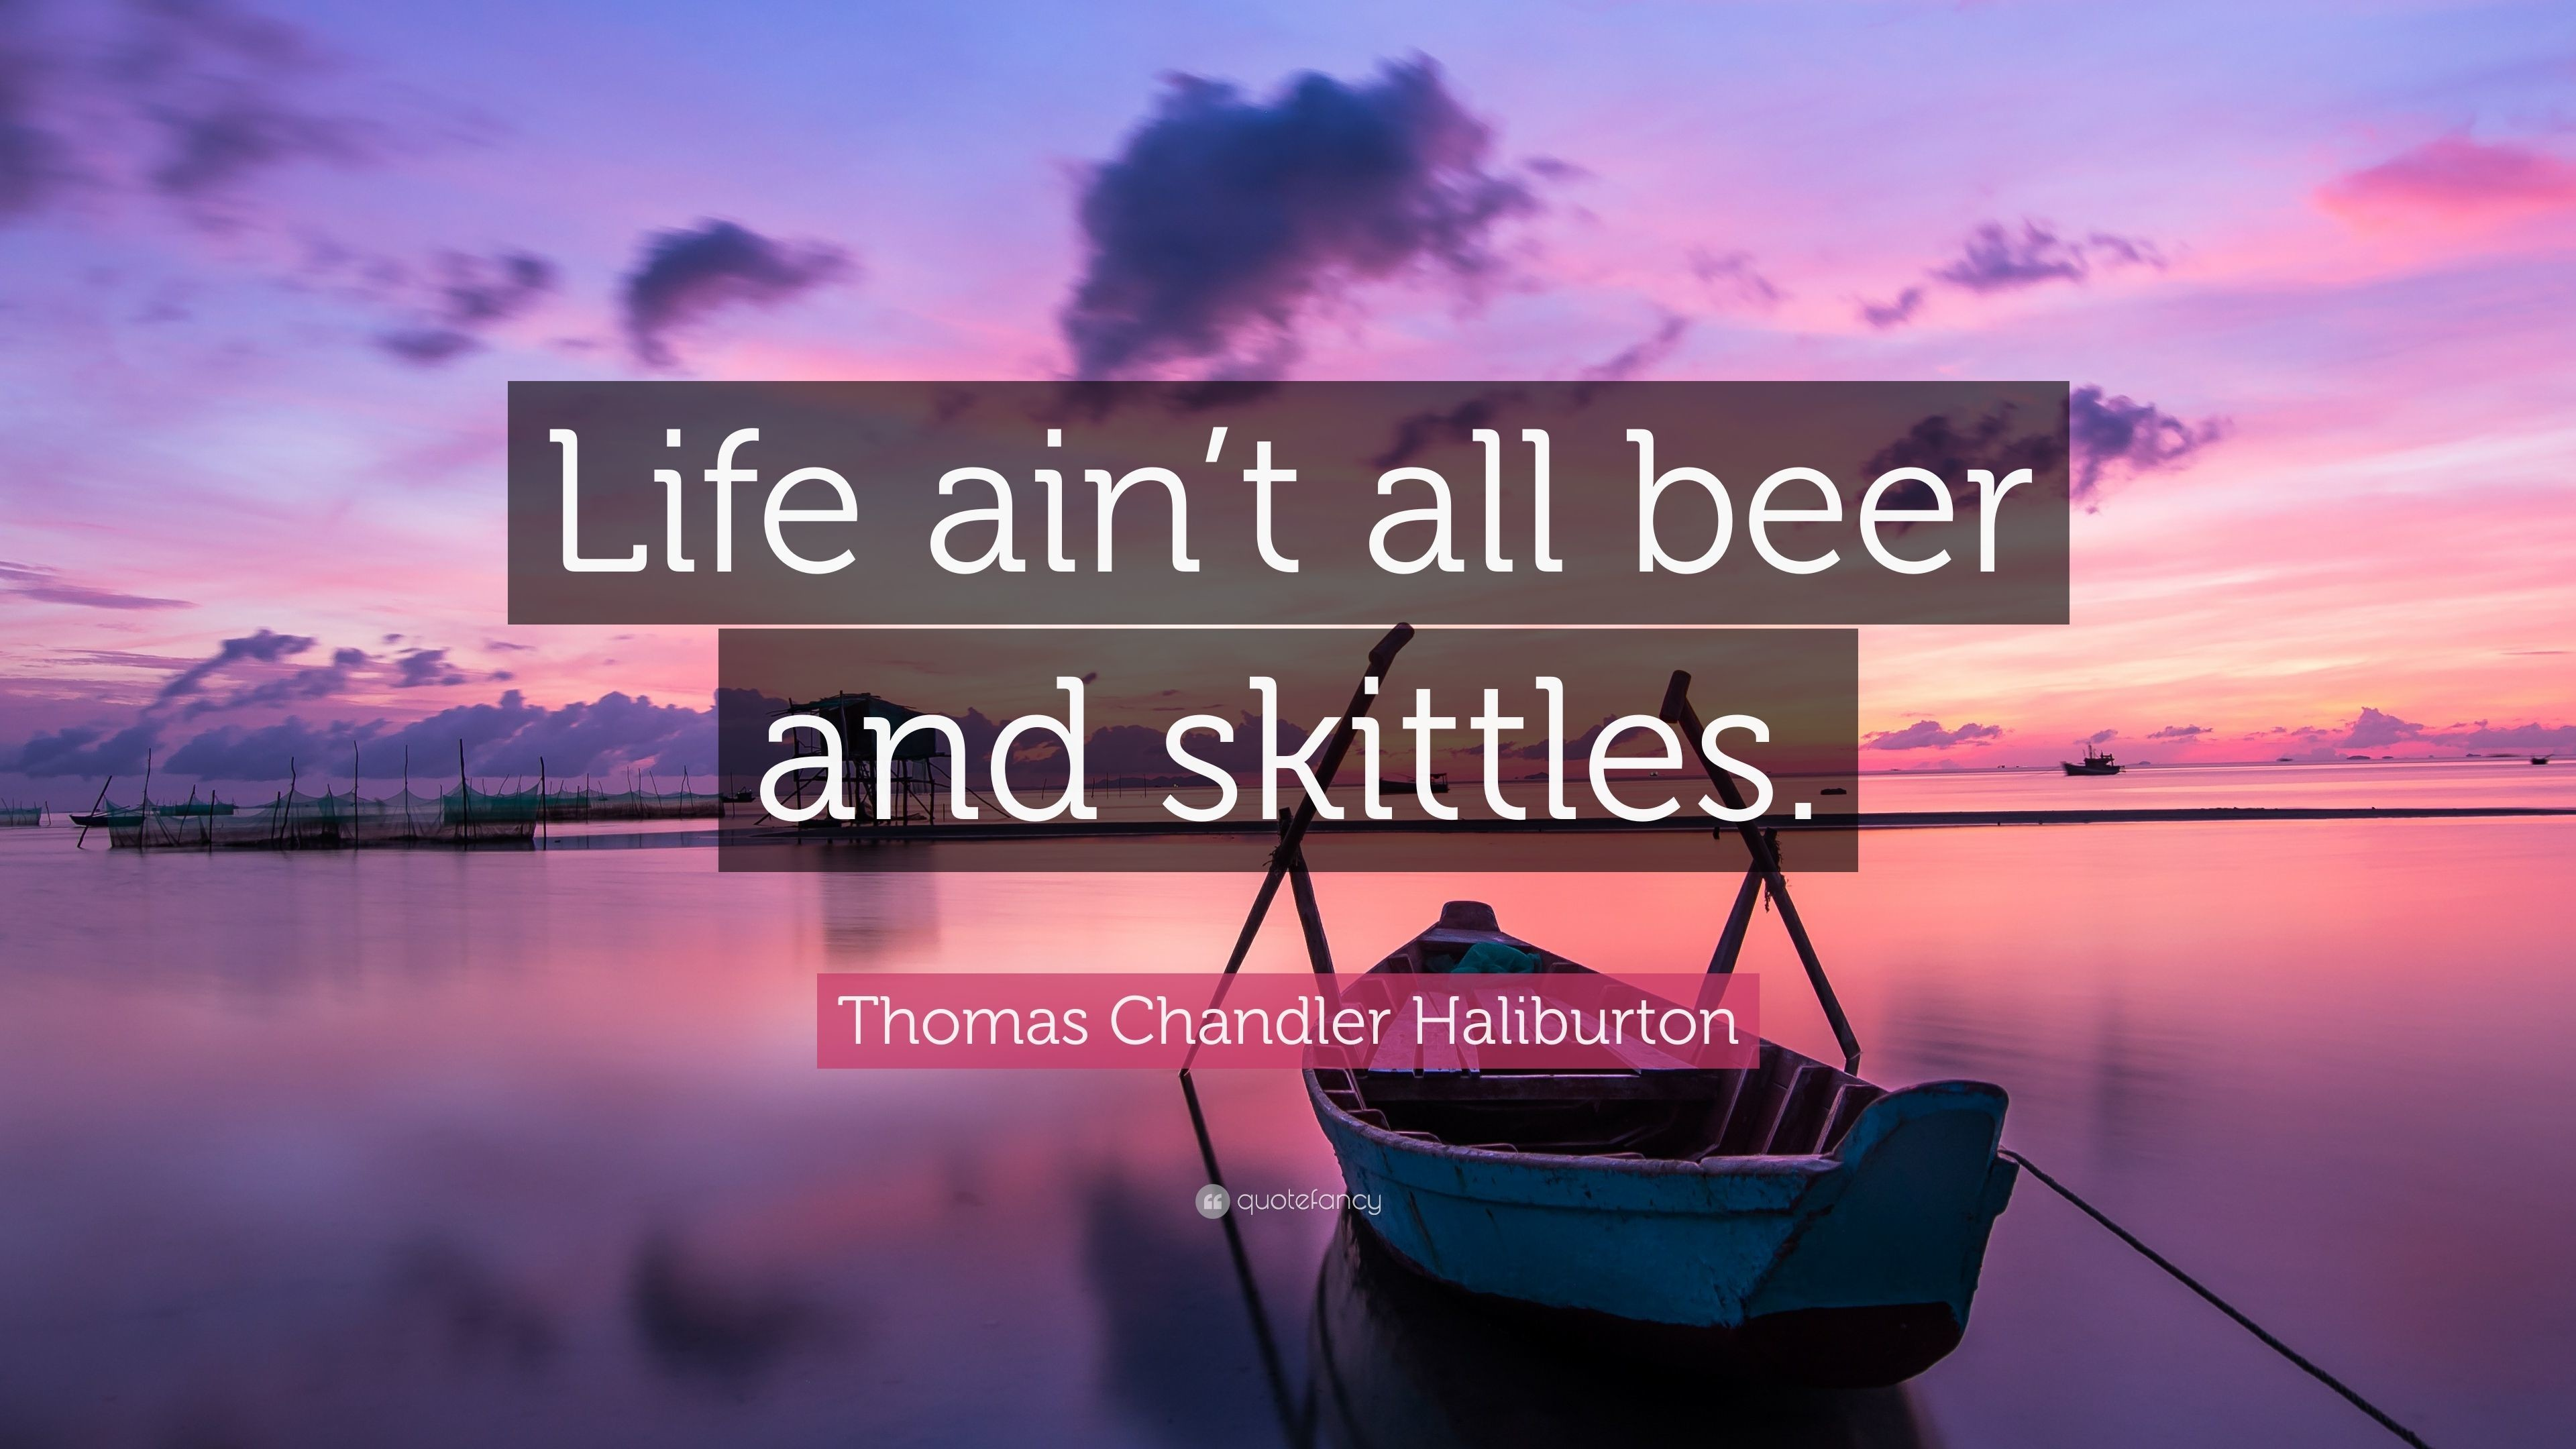 """Res: 3840x2160, Thomas Chandler Haliburton Quote: """"Life ain't all beer and skittles."""""""